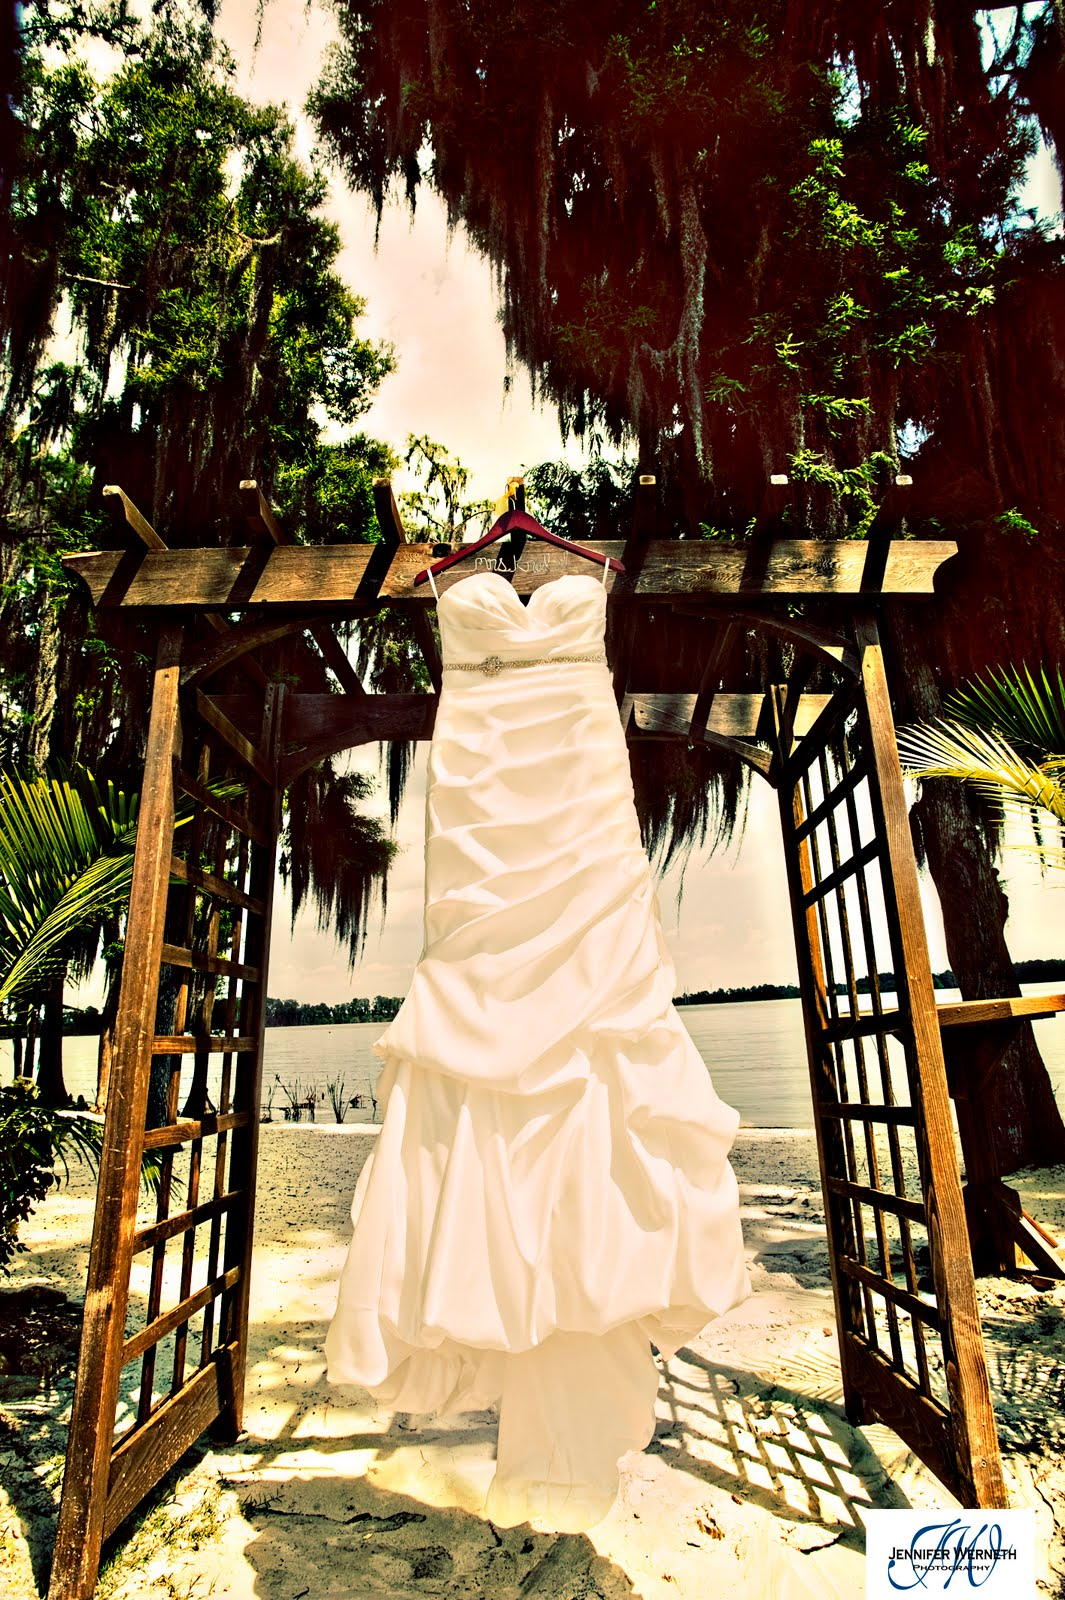 Kristi & Brad's Wedding photography Paradise Cove Orlando Fl photographers